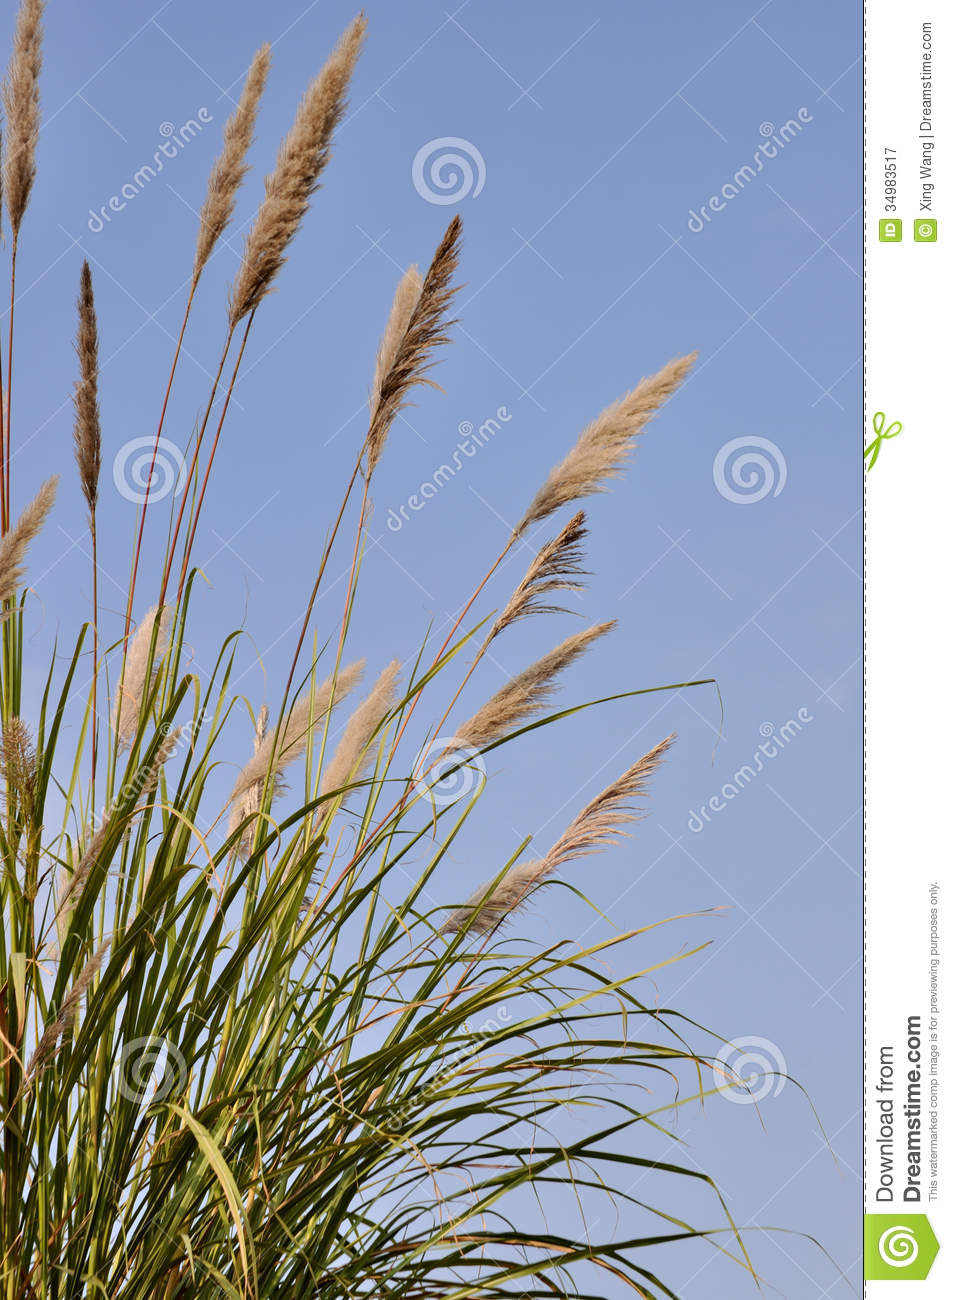 Tall Grass Royalty Free Stock Photography  Image 34983517